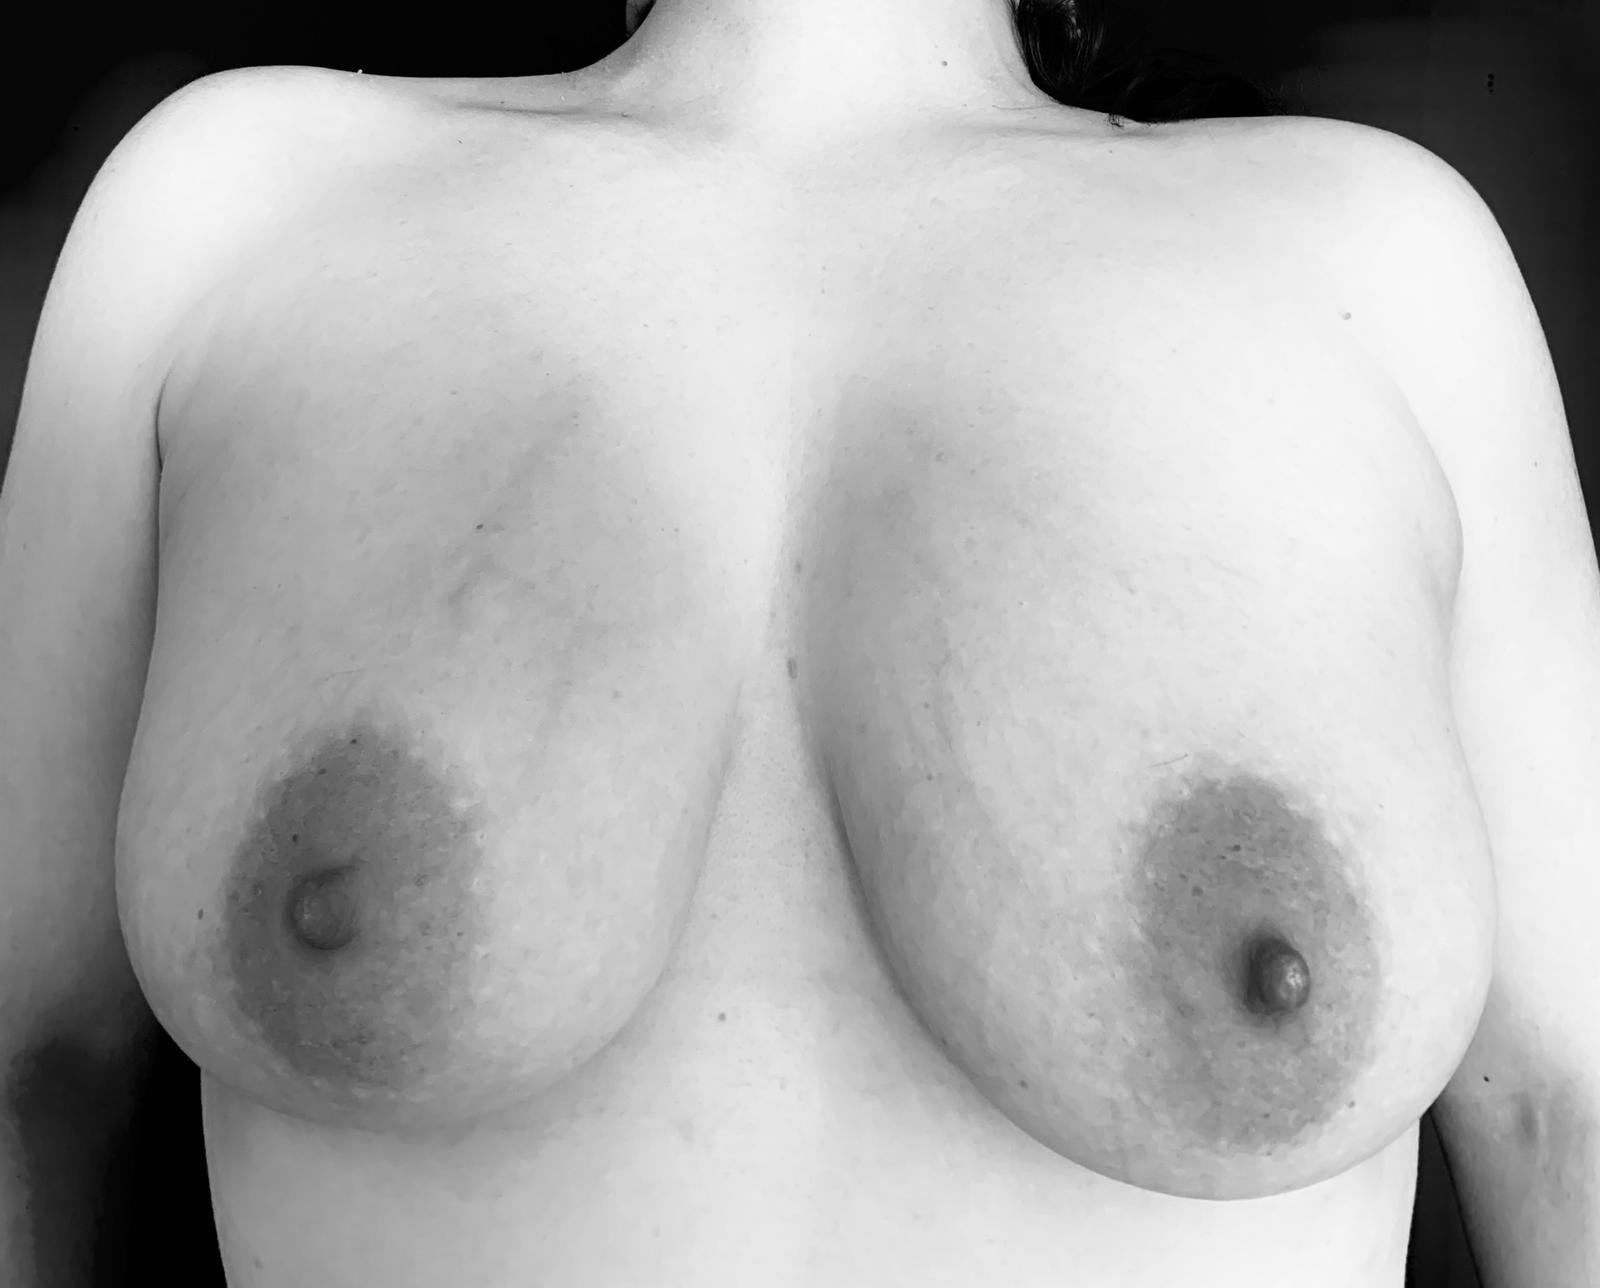 Simplicity - a black and white image of my breasts